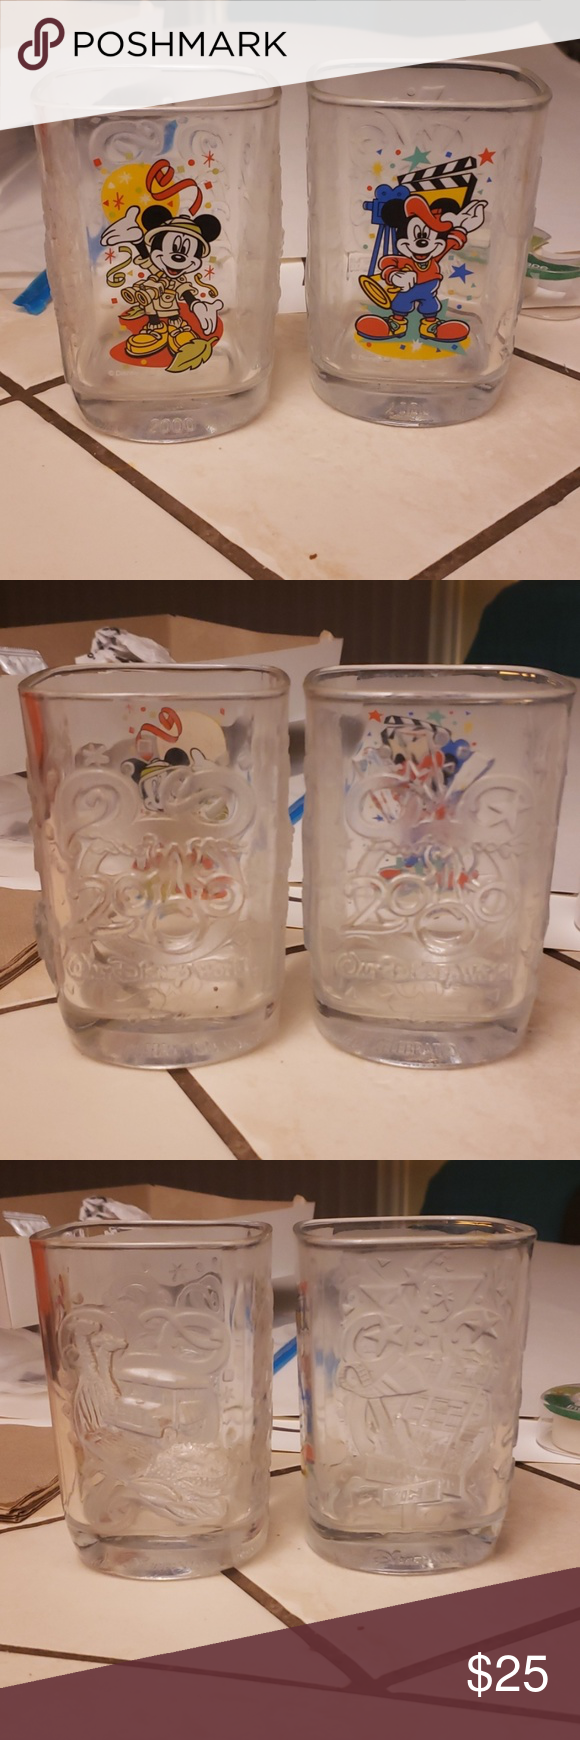 McDonalds Disney 2000 Cups 2 Sets of Disney 2000 cups from McDonalds collab with Disney .  Offers Welcome!  Thick Glasses . Dont use anymore Disney Kitchen Kitchen Tools #disneycups